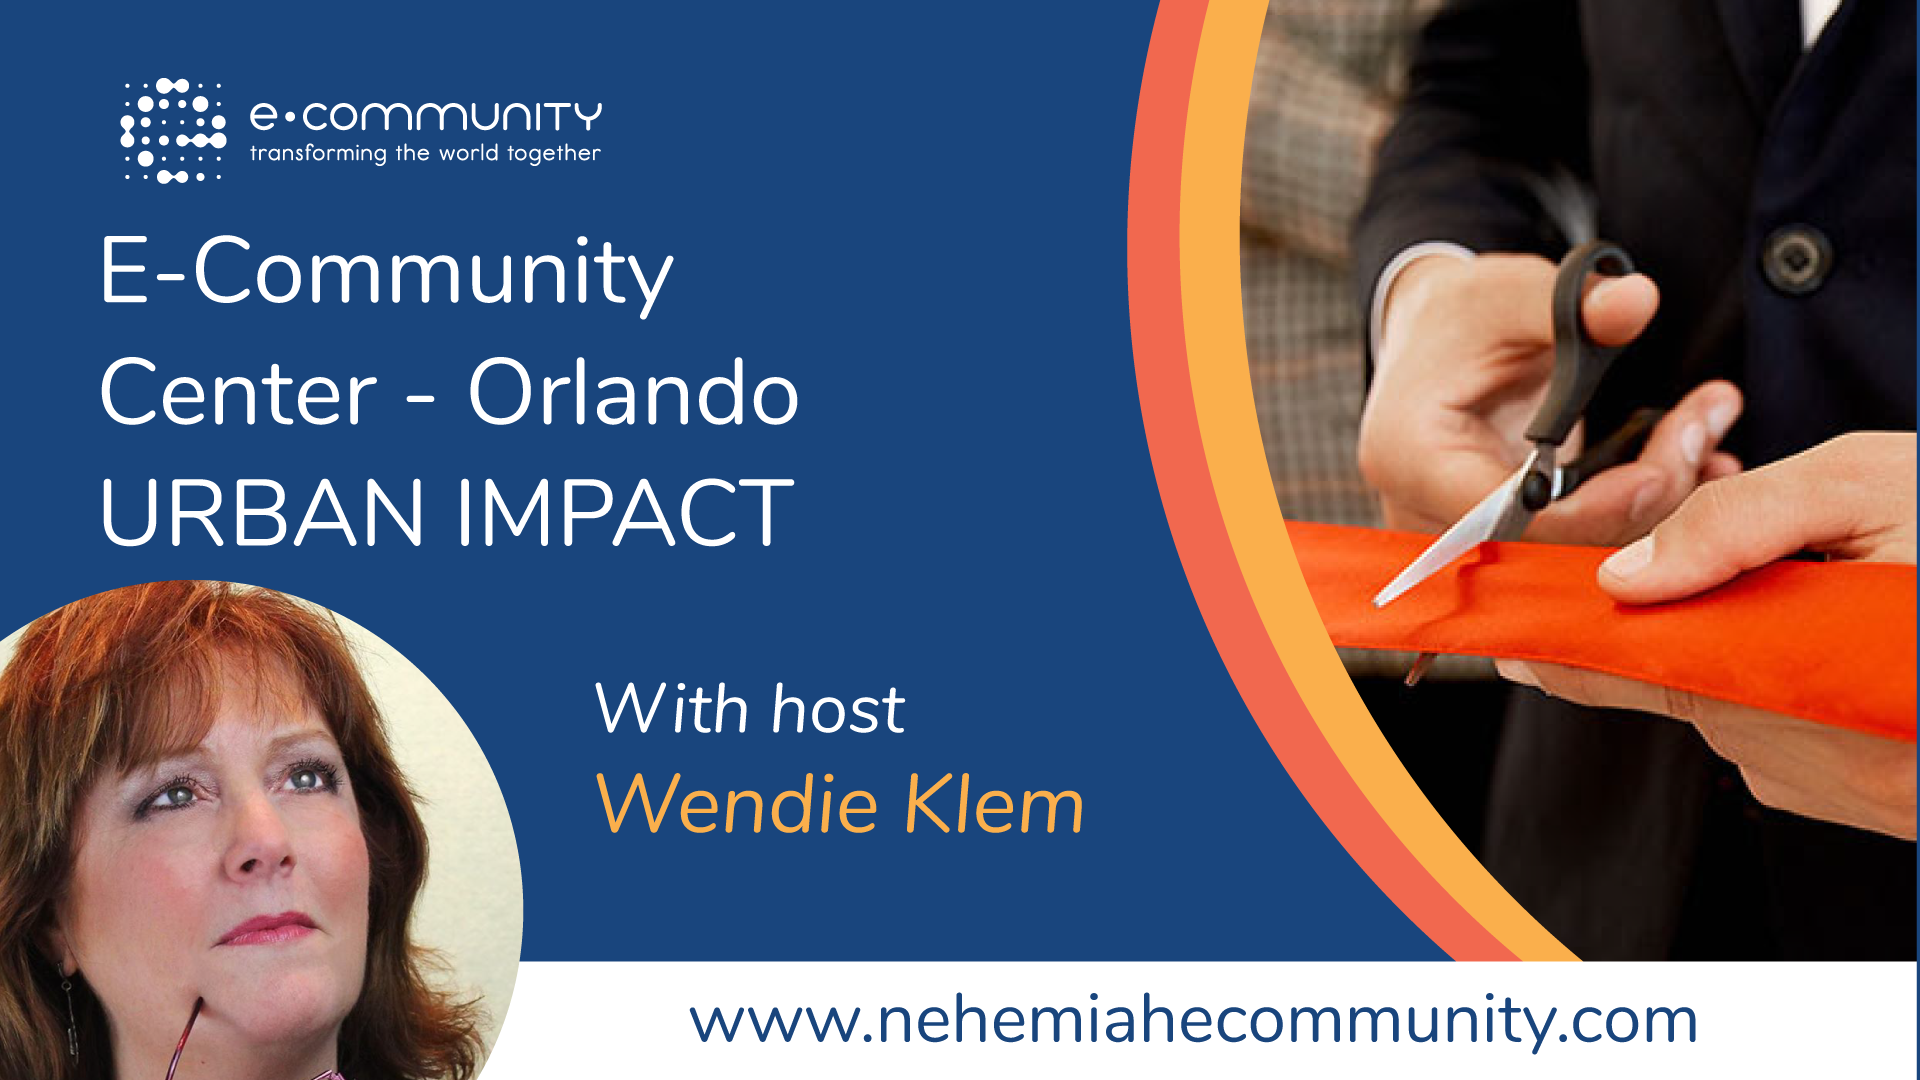 E-Community Orlando Center URBAN IMPACT